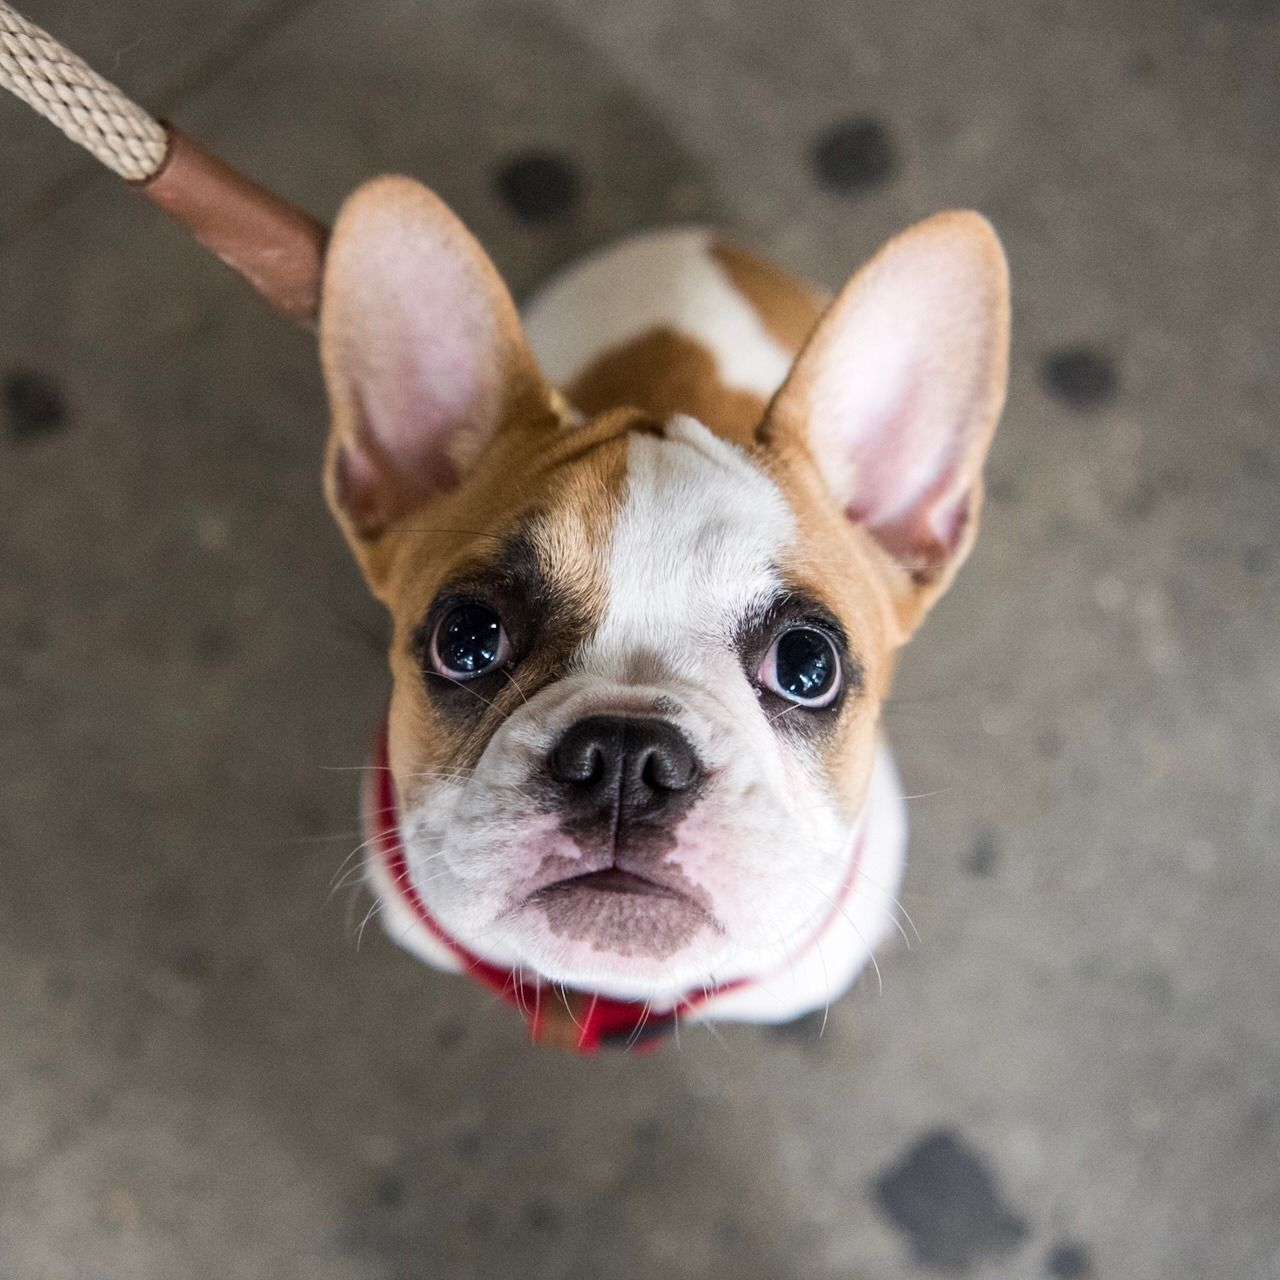 Cashew French Bulldog 5 M O 10th 3rd Ave New York Ny